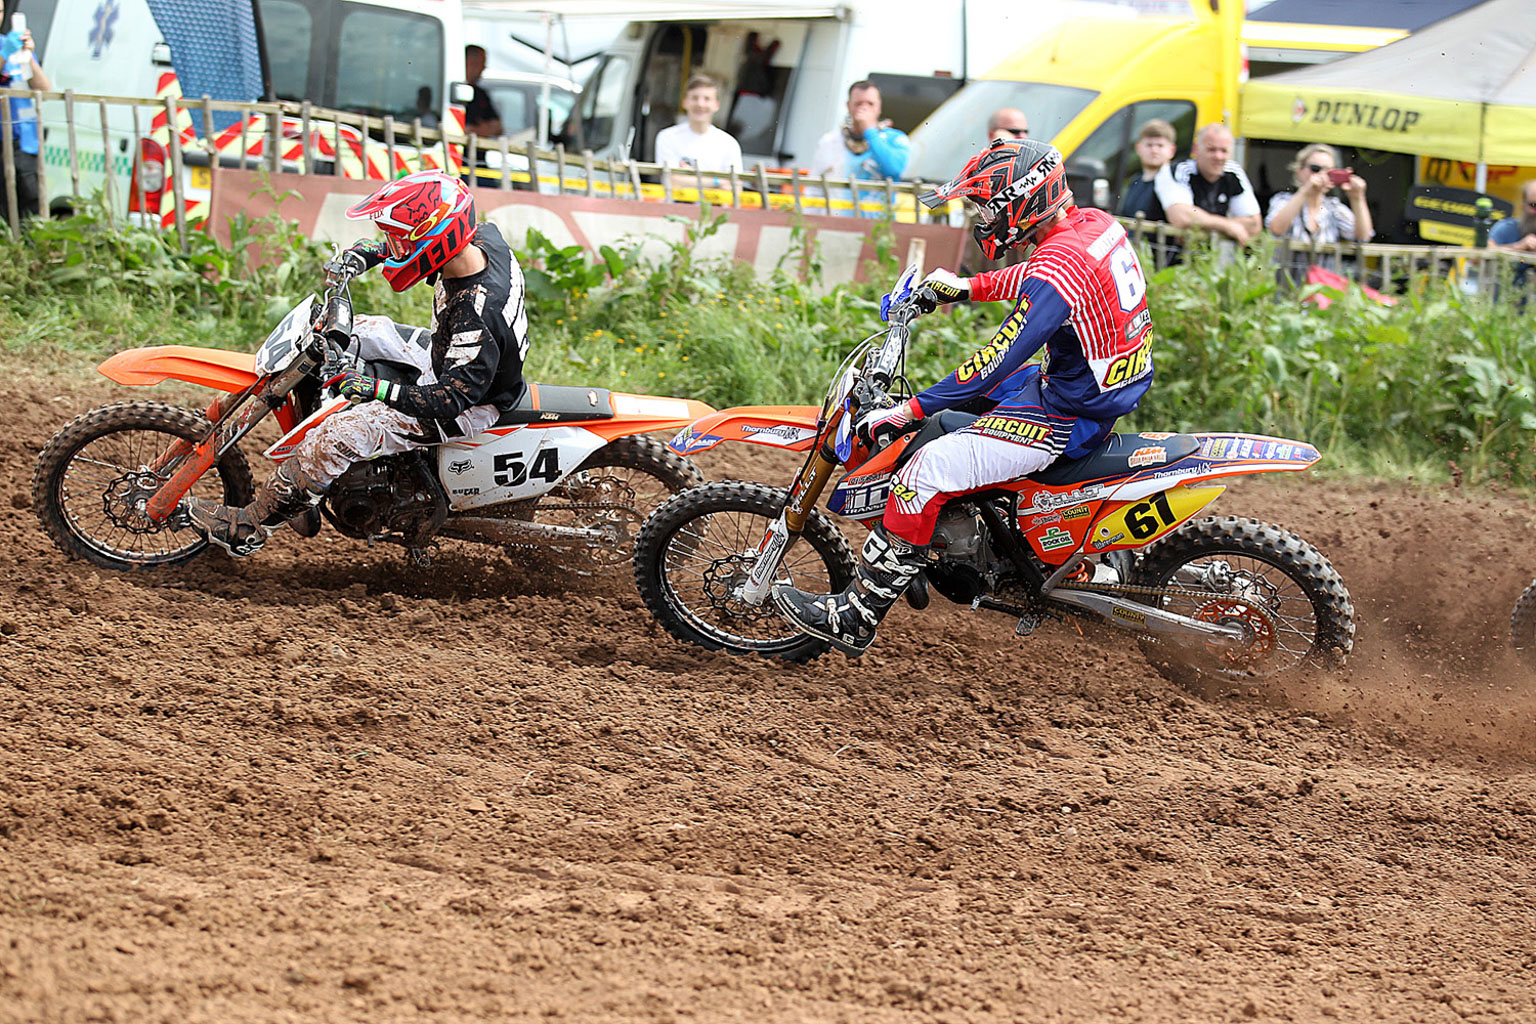 Dylan Hodgkins(54) and Jack Waterman in 2T action